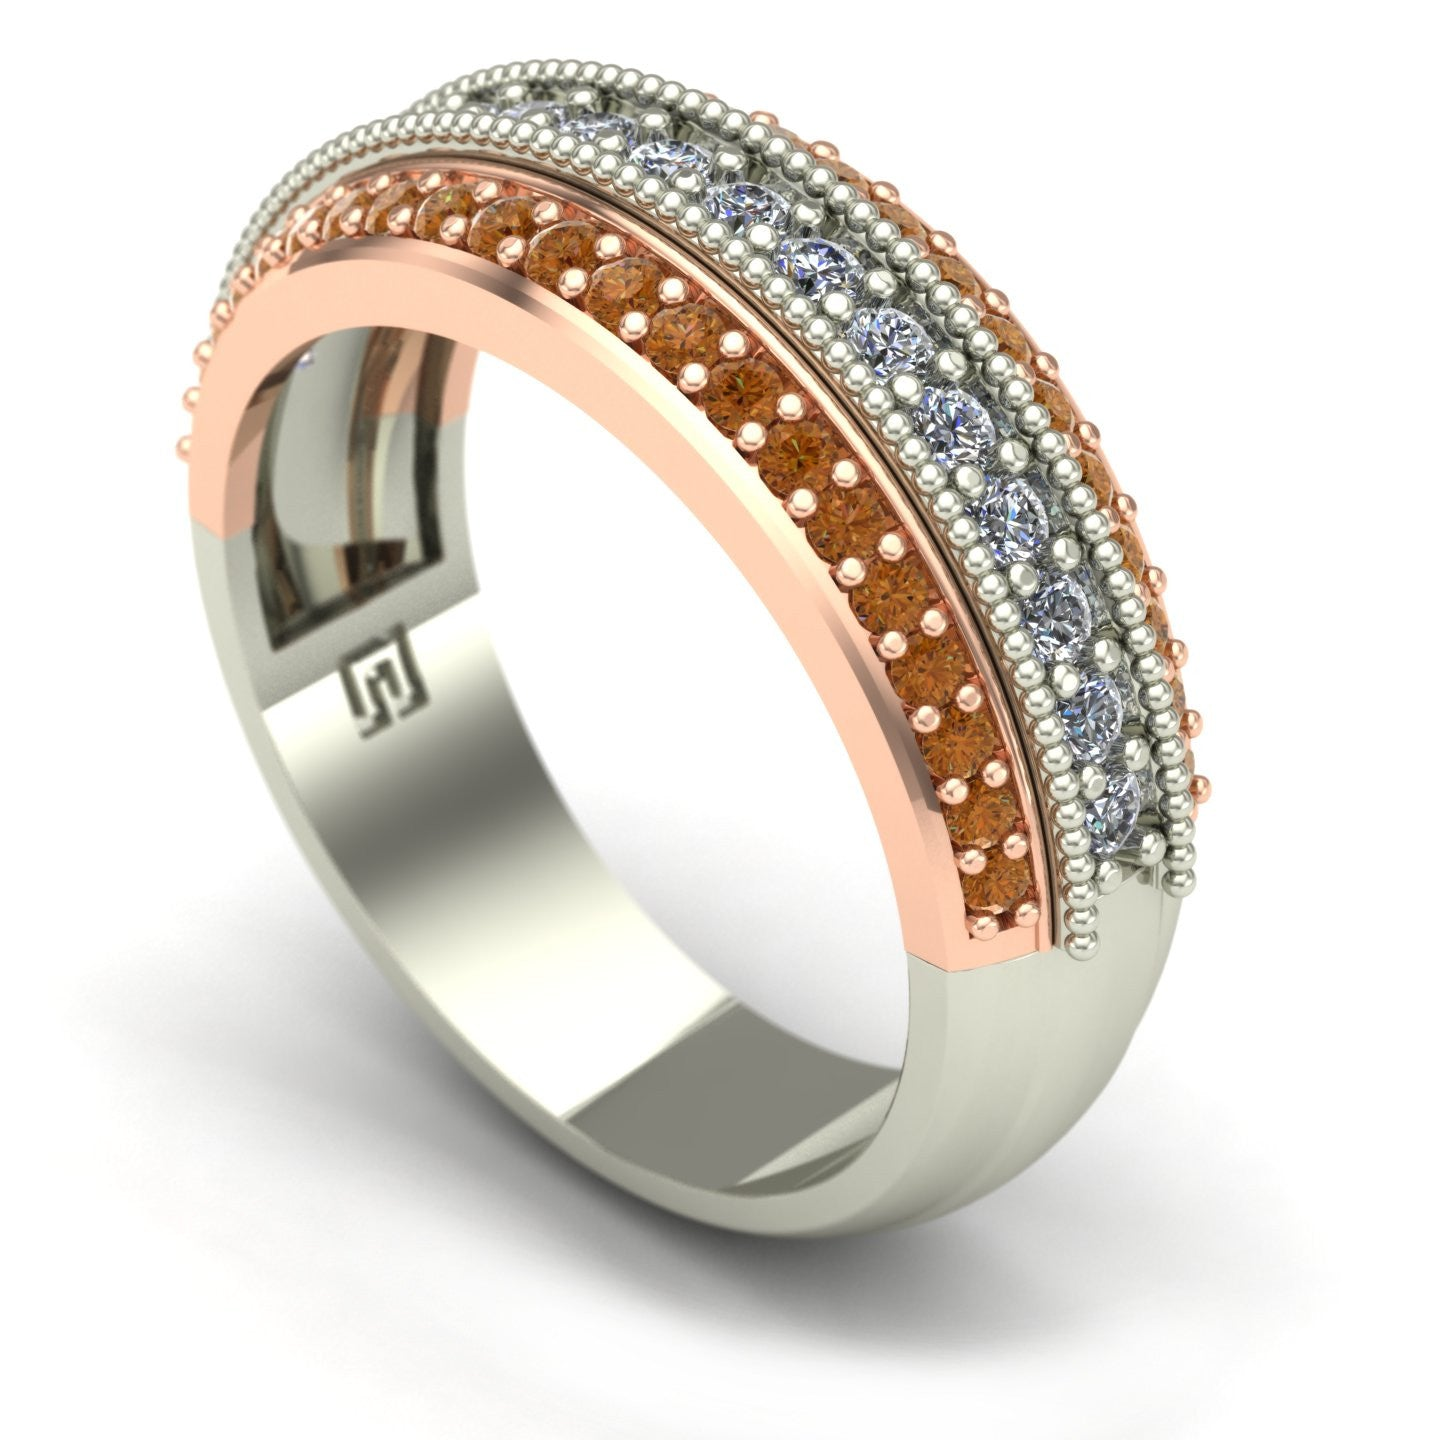 White and cognac diamond band in 14kwhite and rose gold